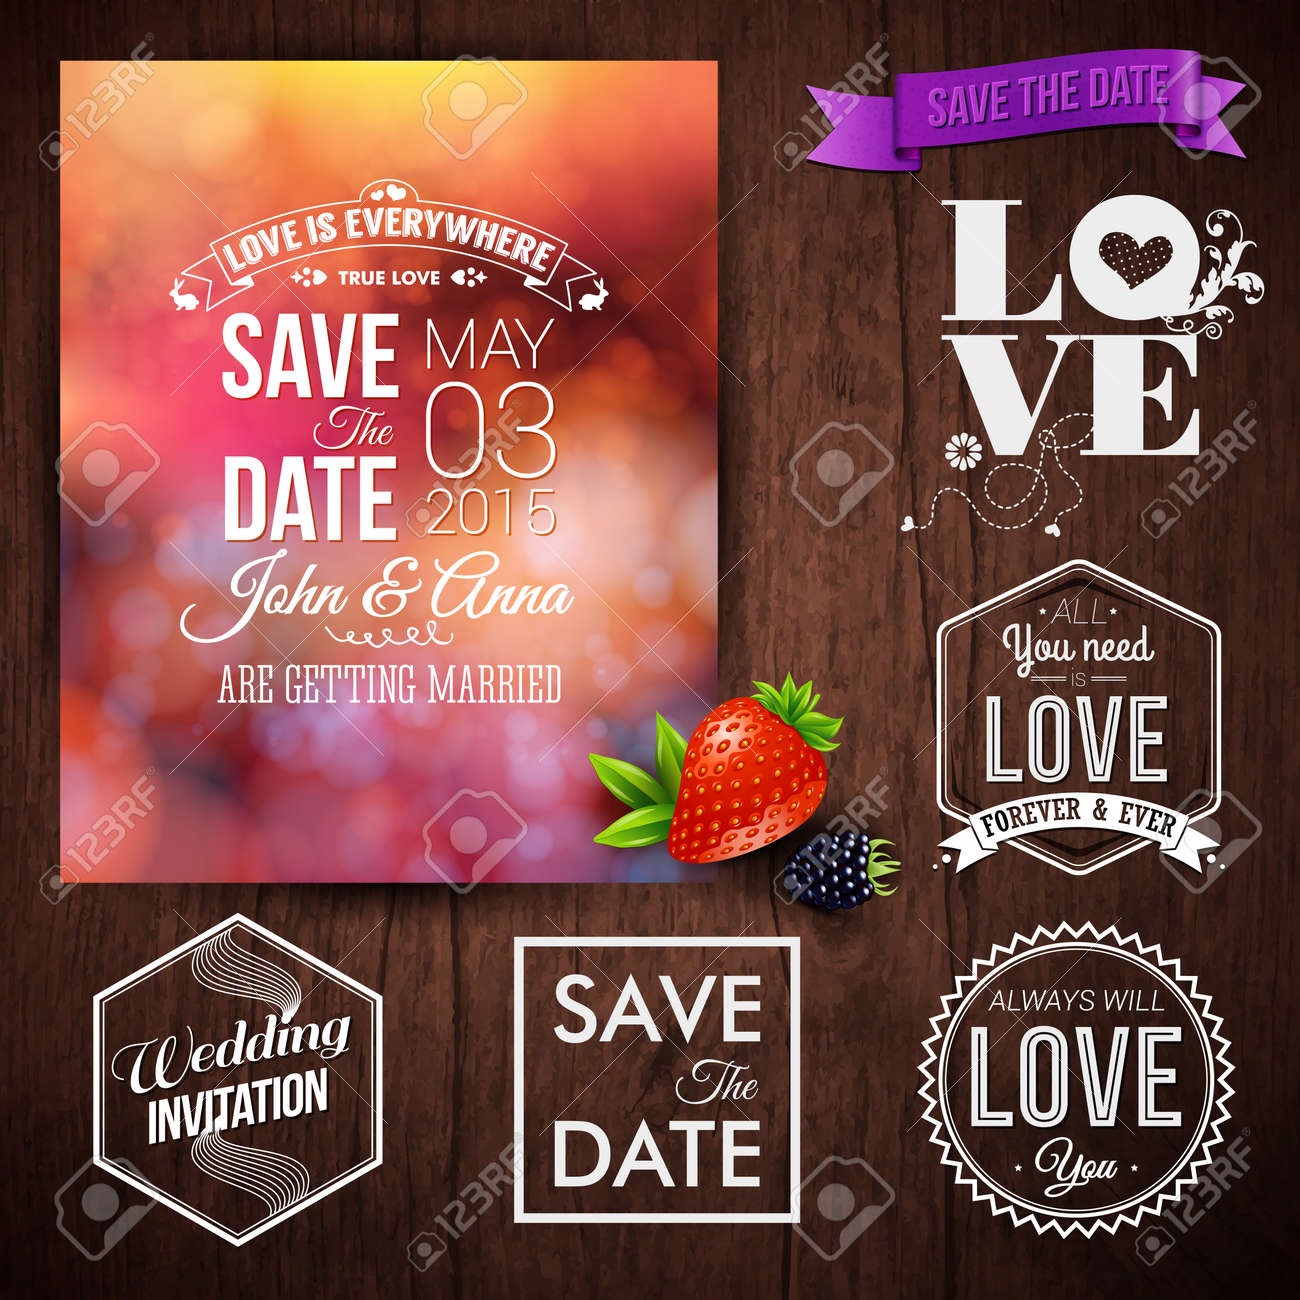 Save The Date For Personal Holiday Cards. Wedding Invitation ...